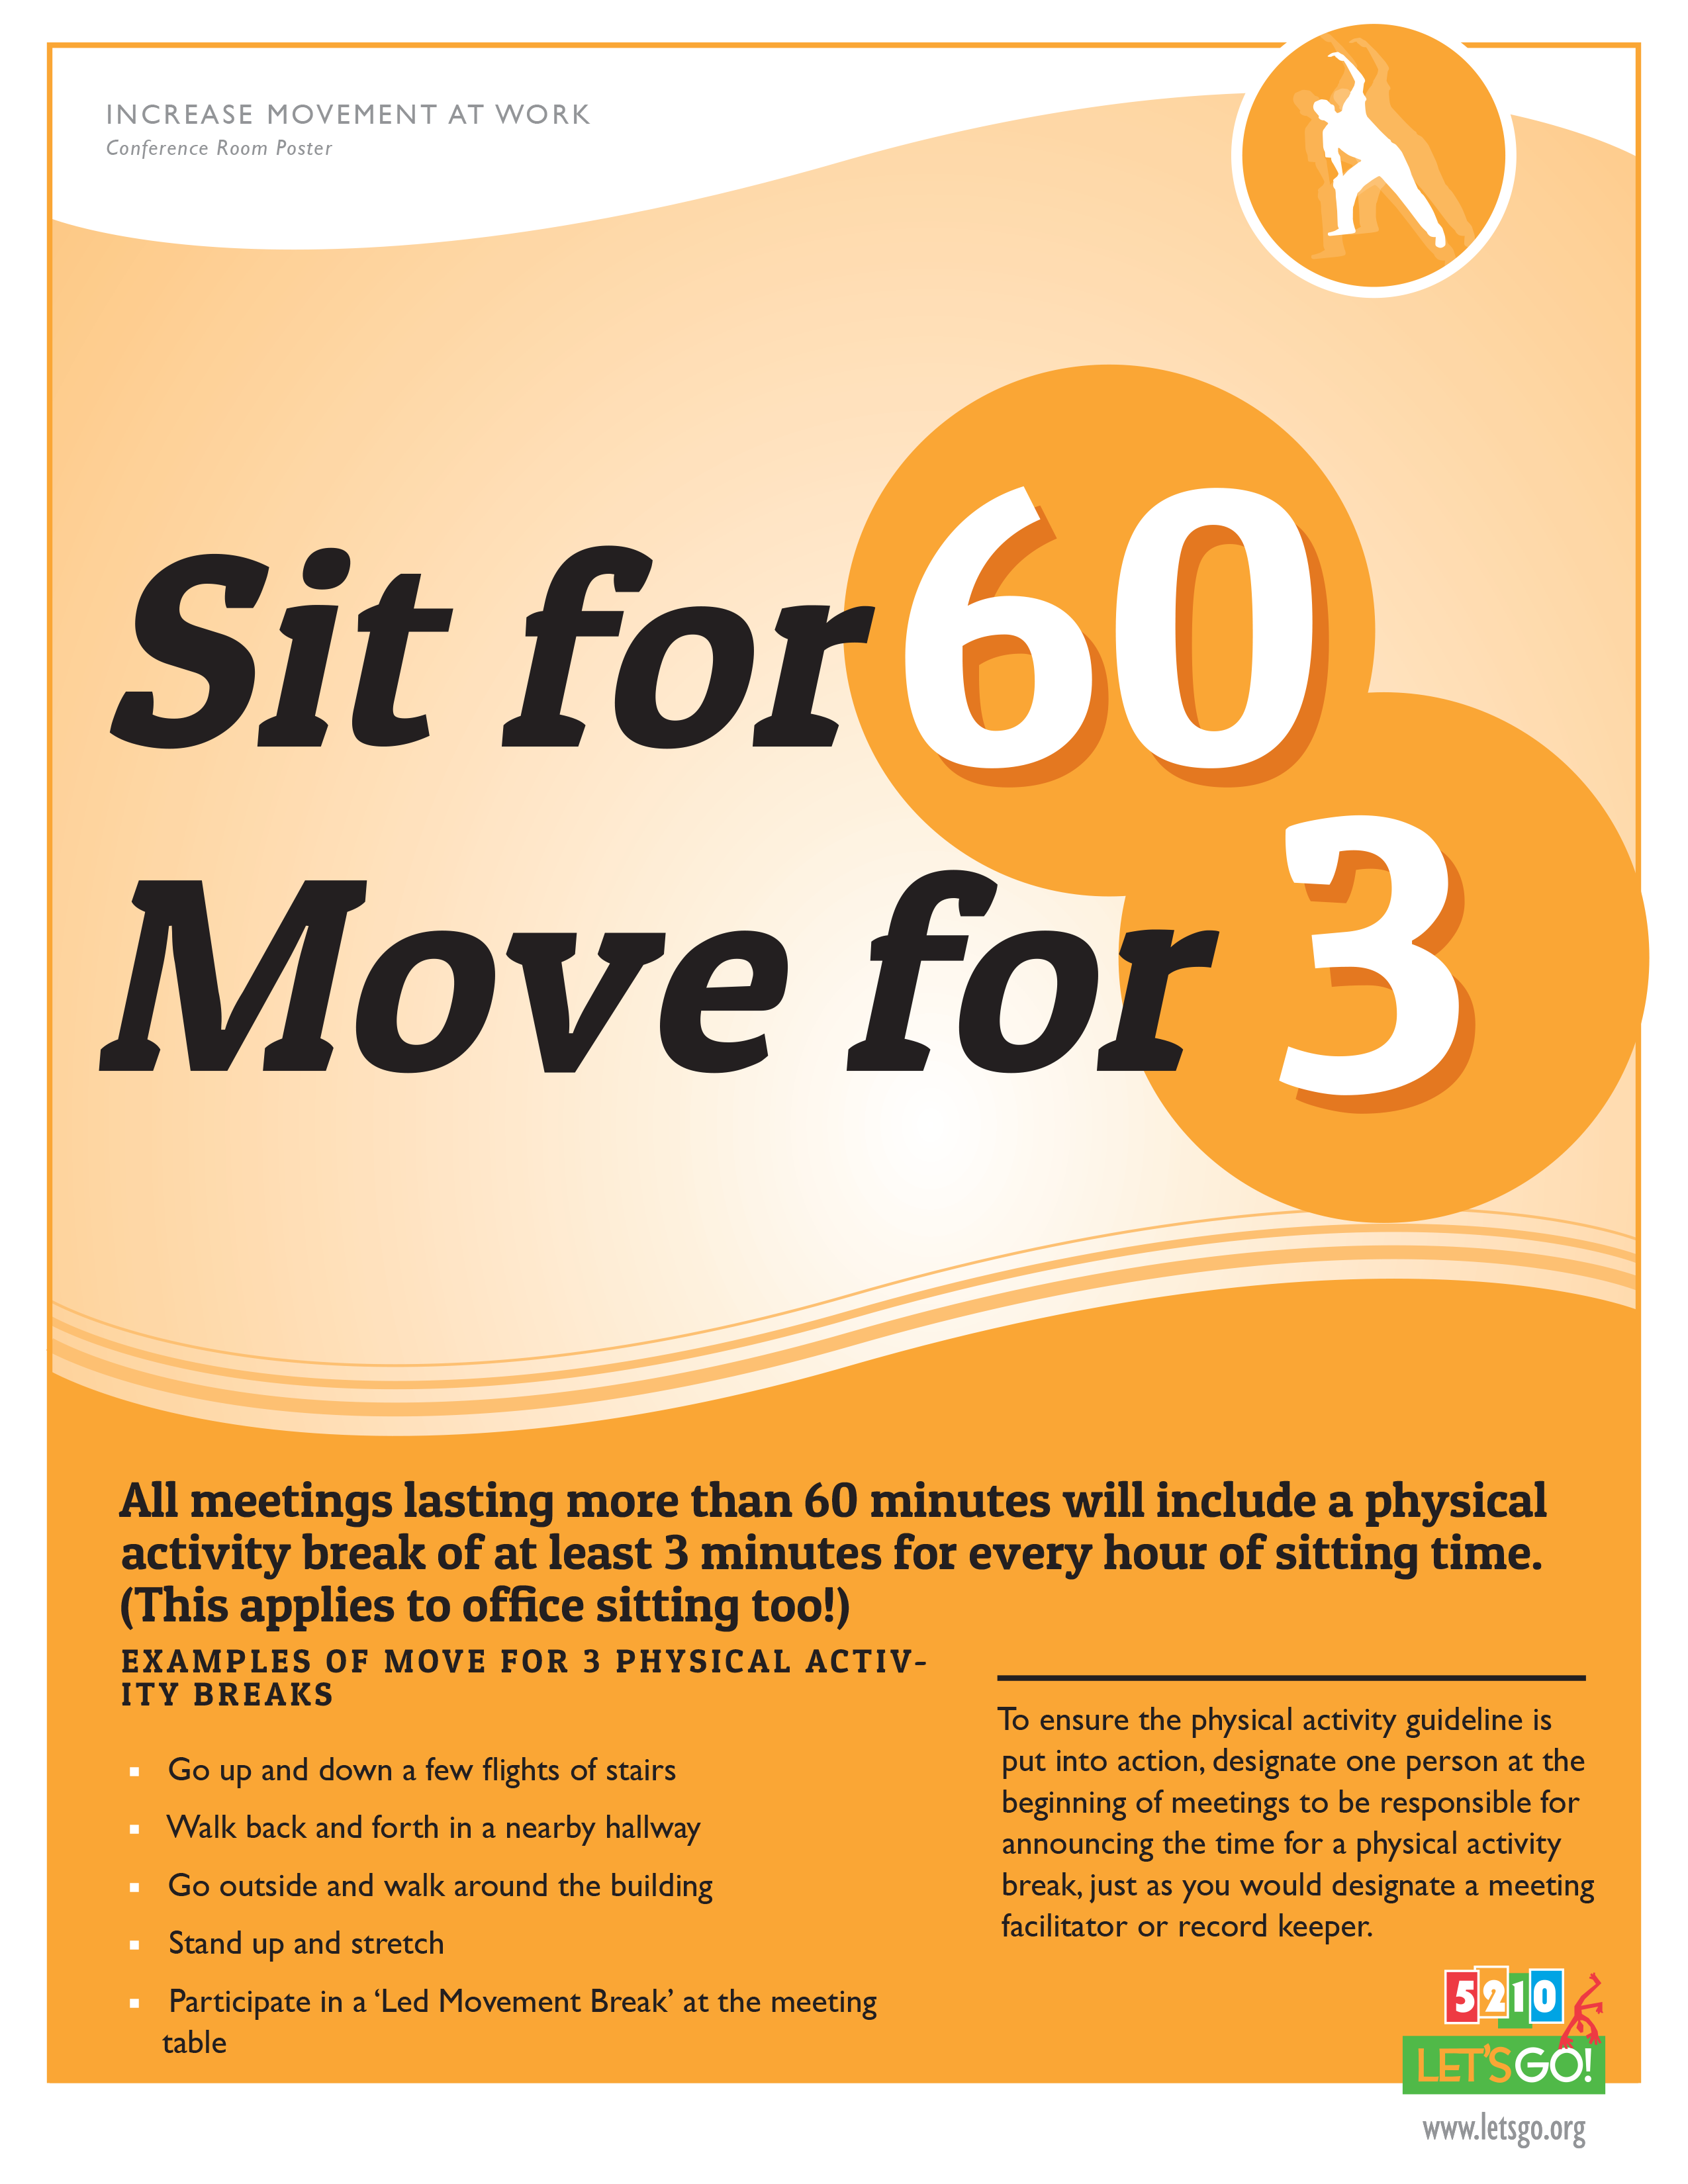 Sit for 60 Move for 3